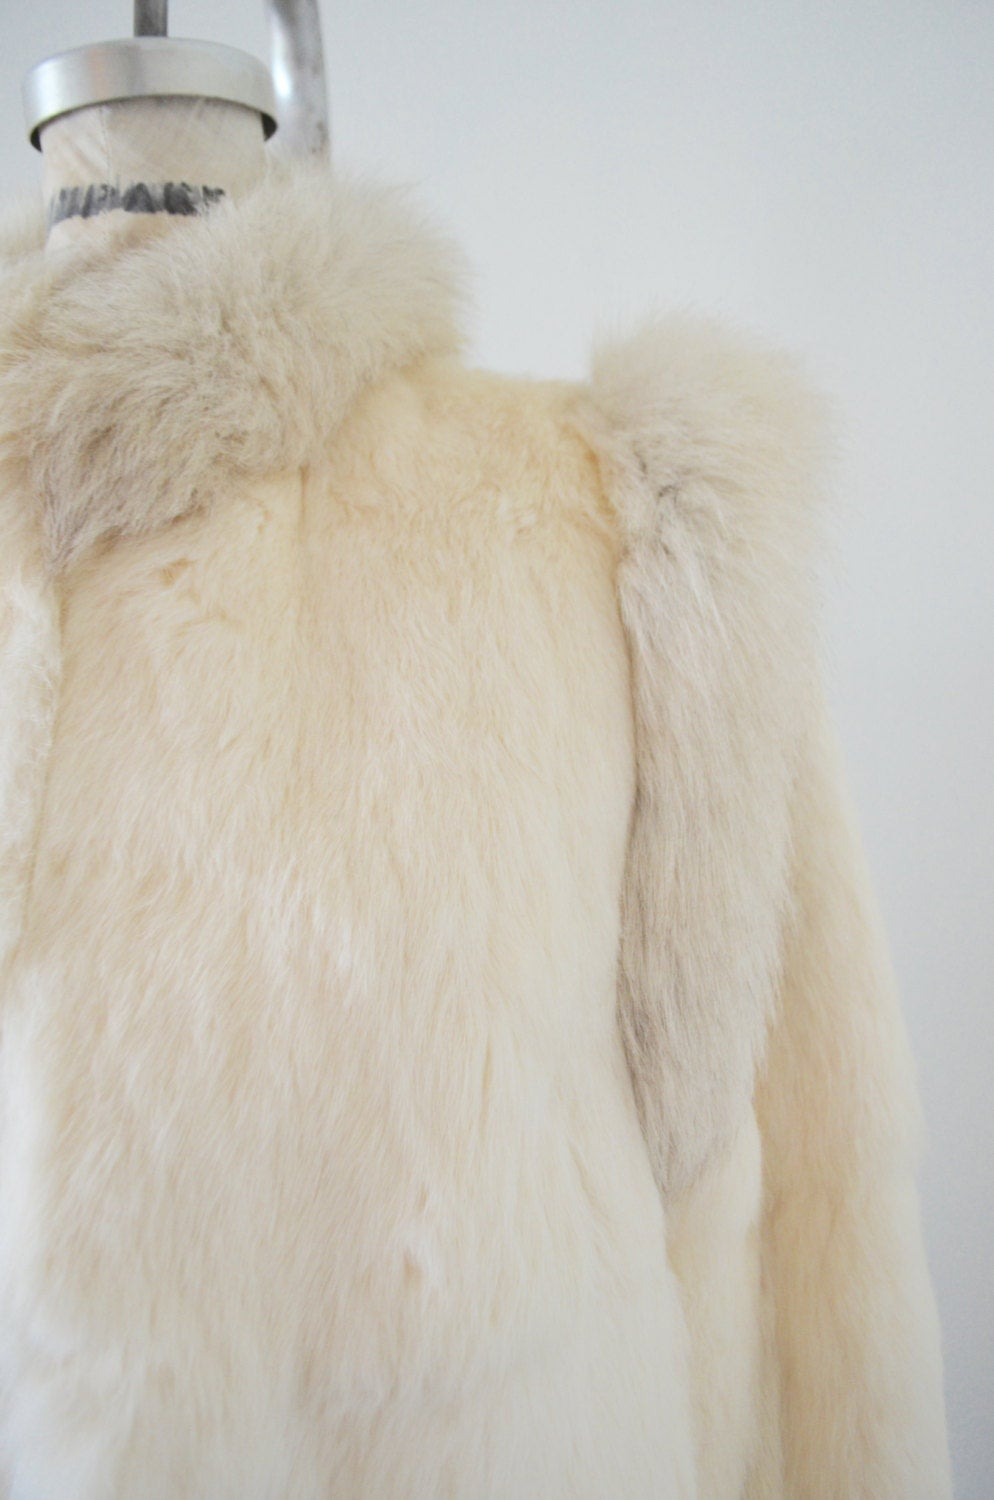 70S Glam Fur Off White Ivory Rabbit Fur Coat L With Fox Collar